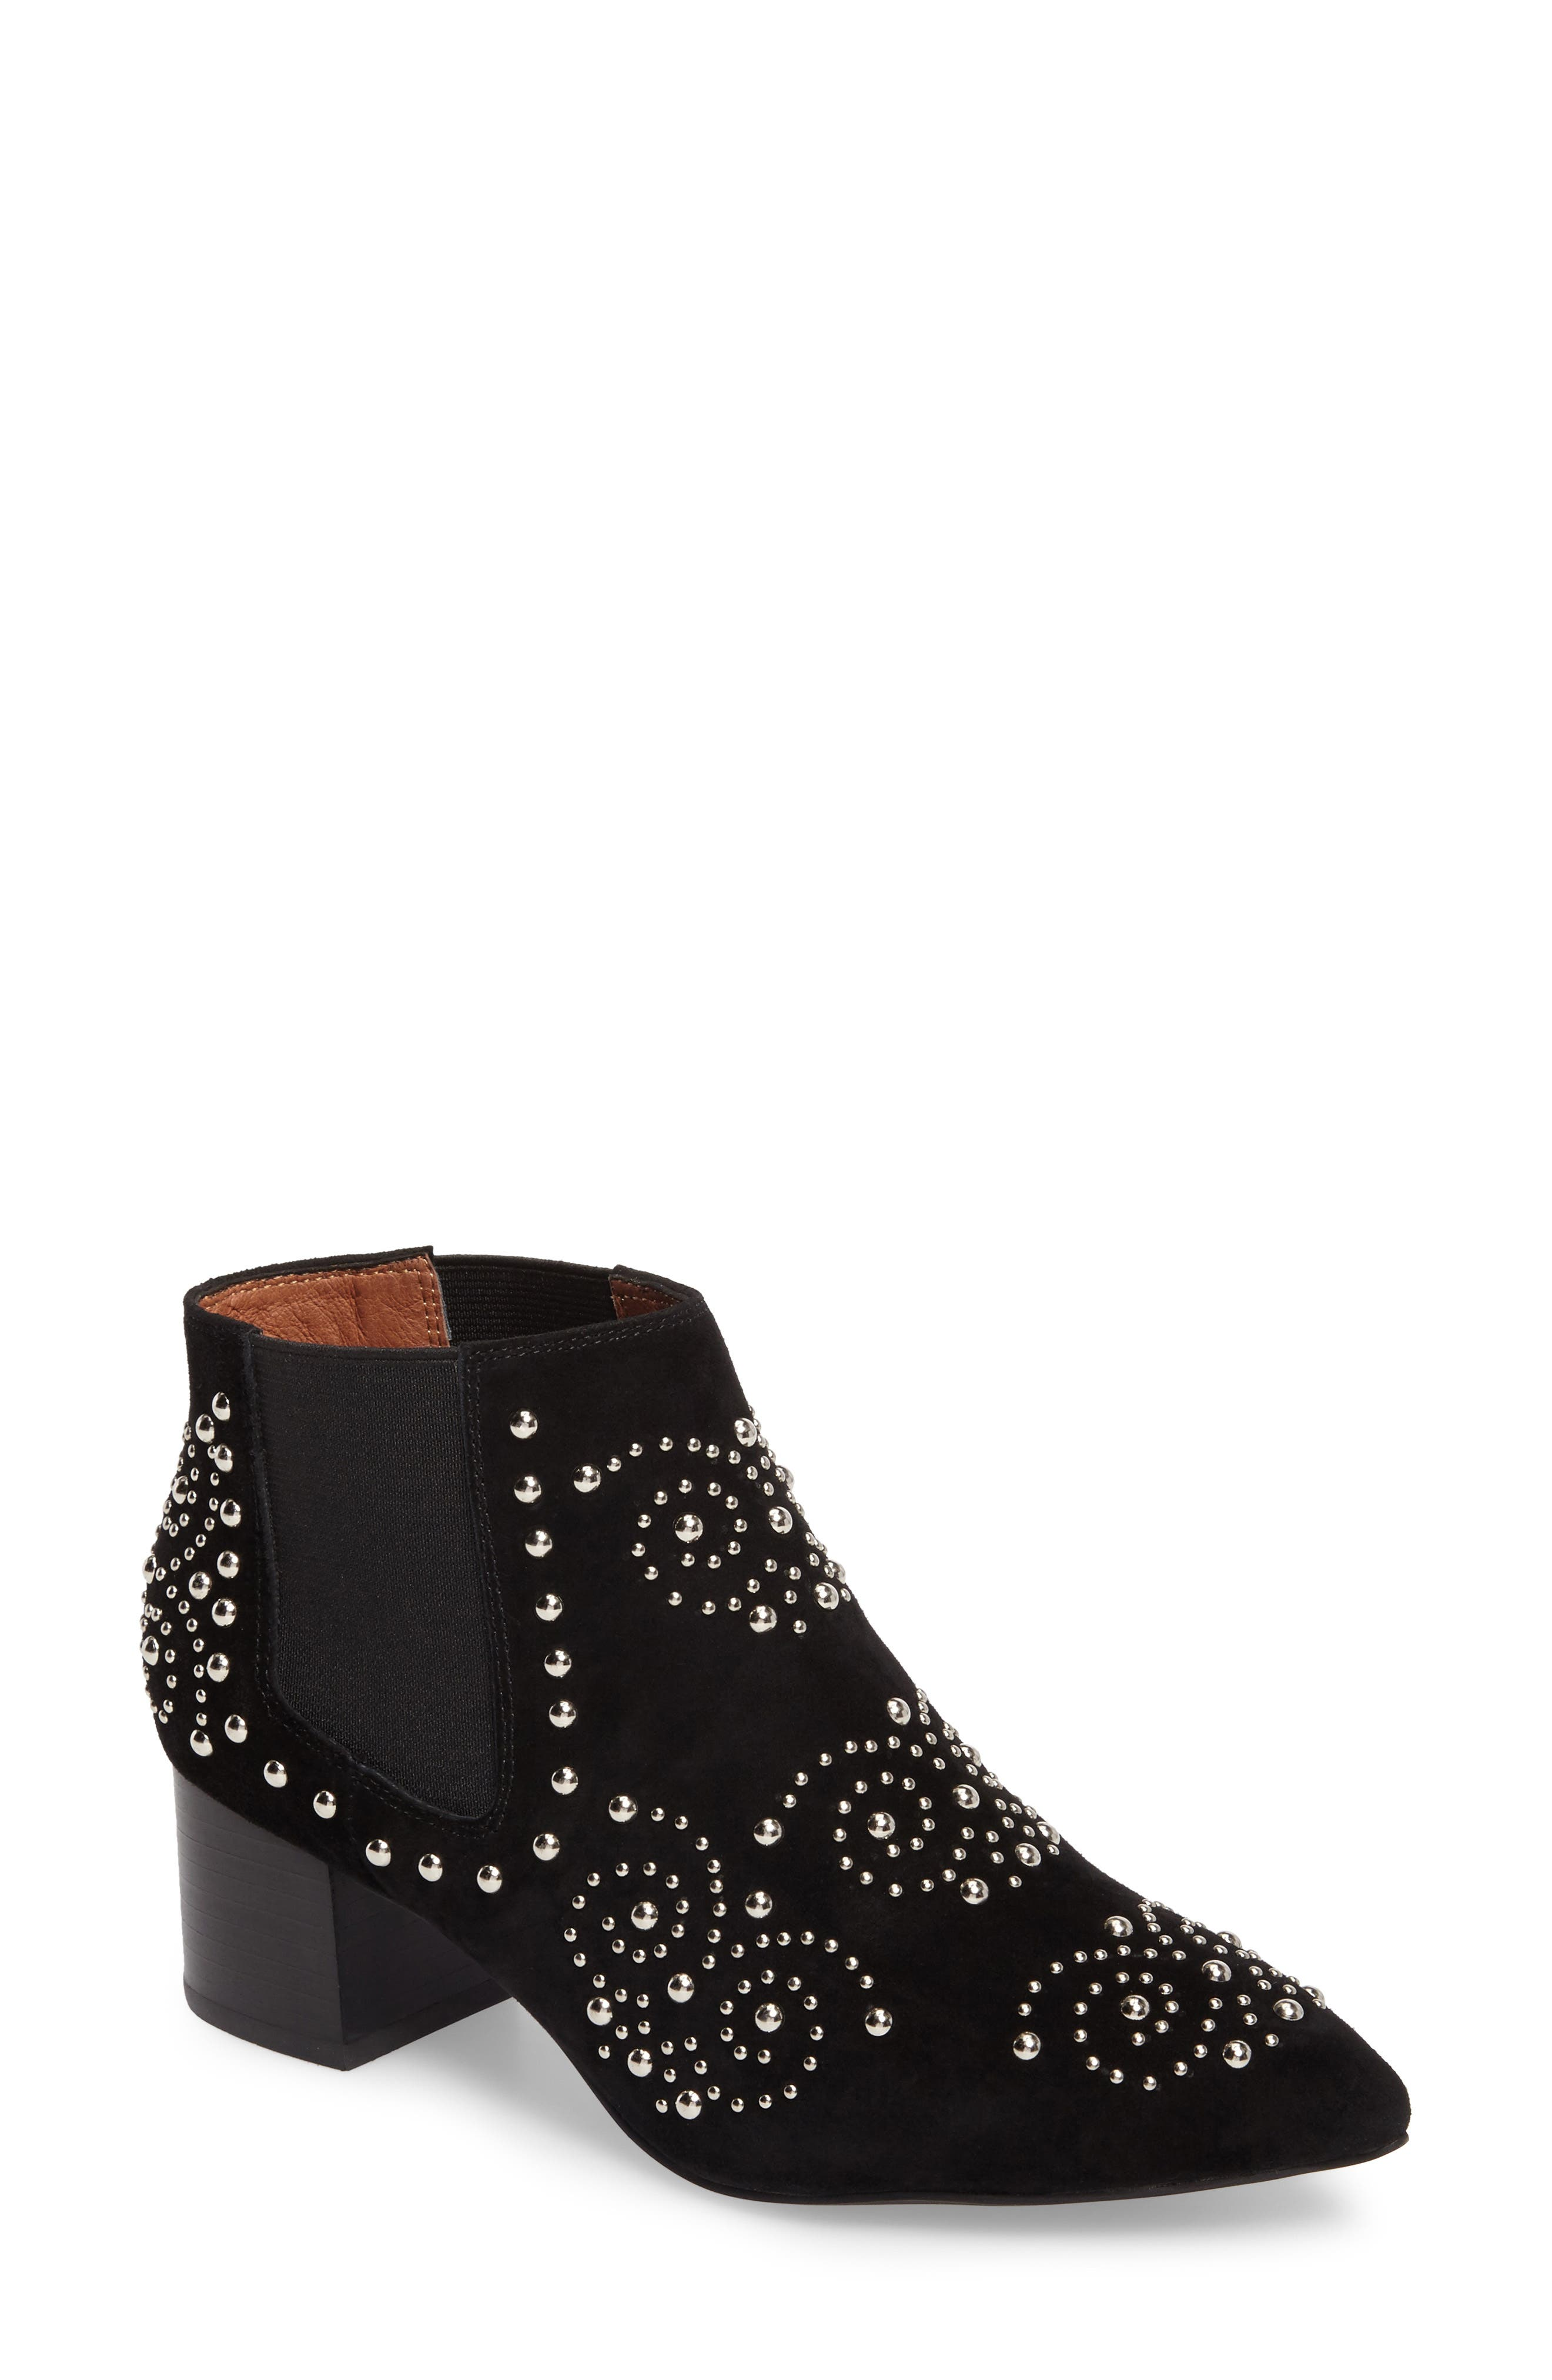 Alternate Image 1 Selected - Jeffrey Campbell Mulvain Studded Bootie (Women)